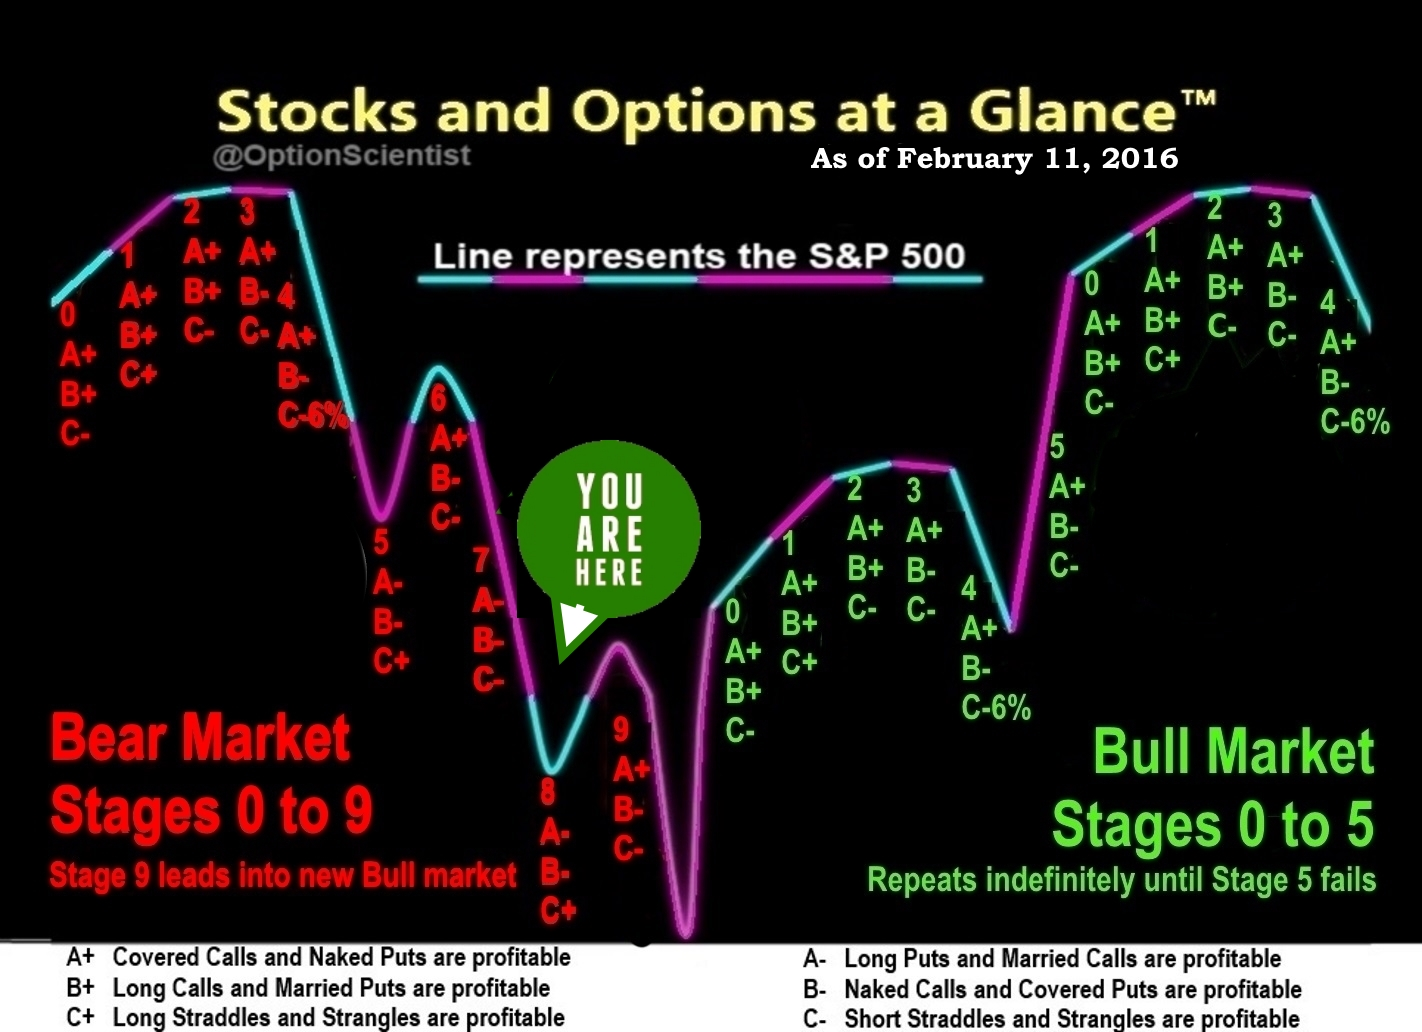 Stocks and Options at a Glance 02-11-16